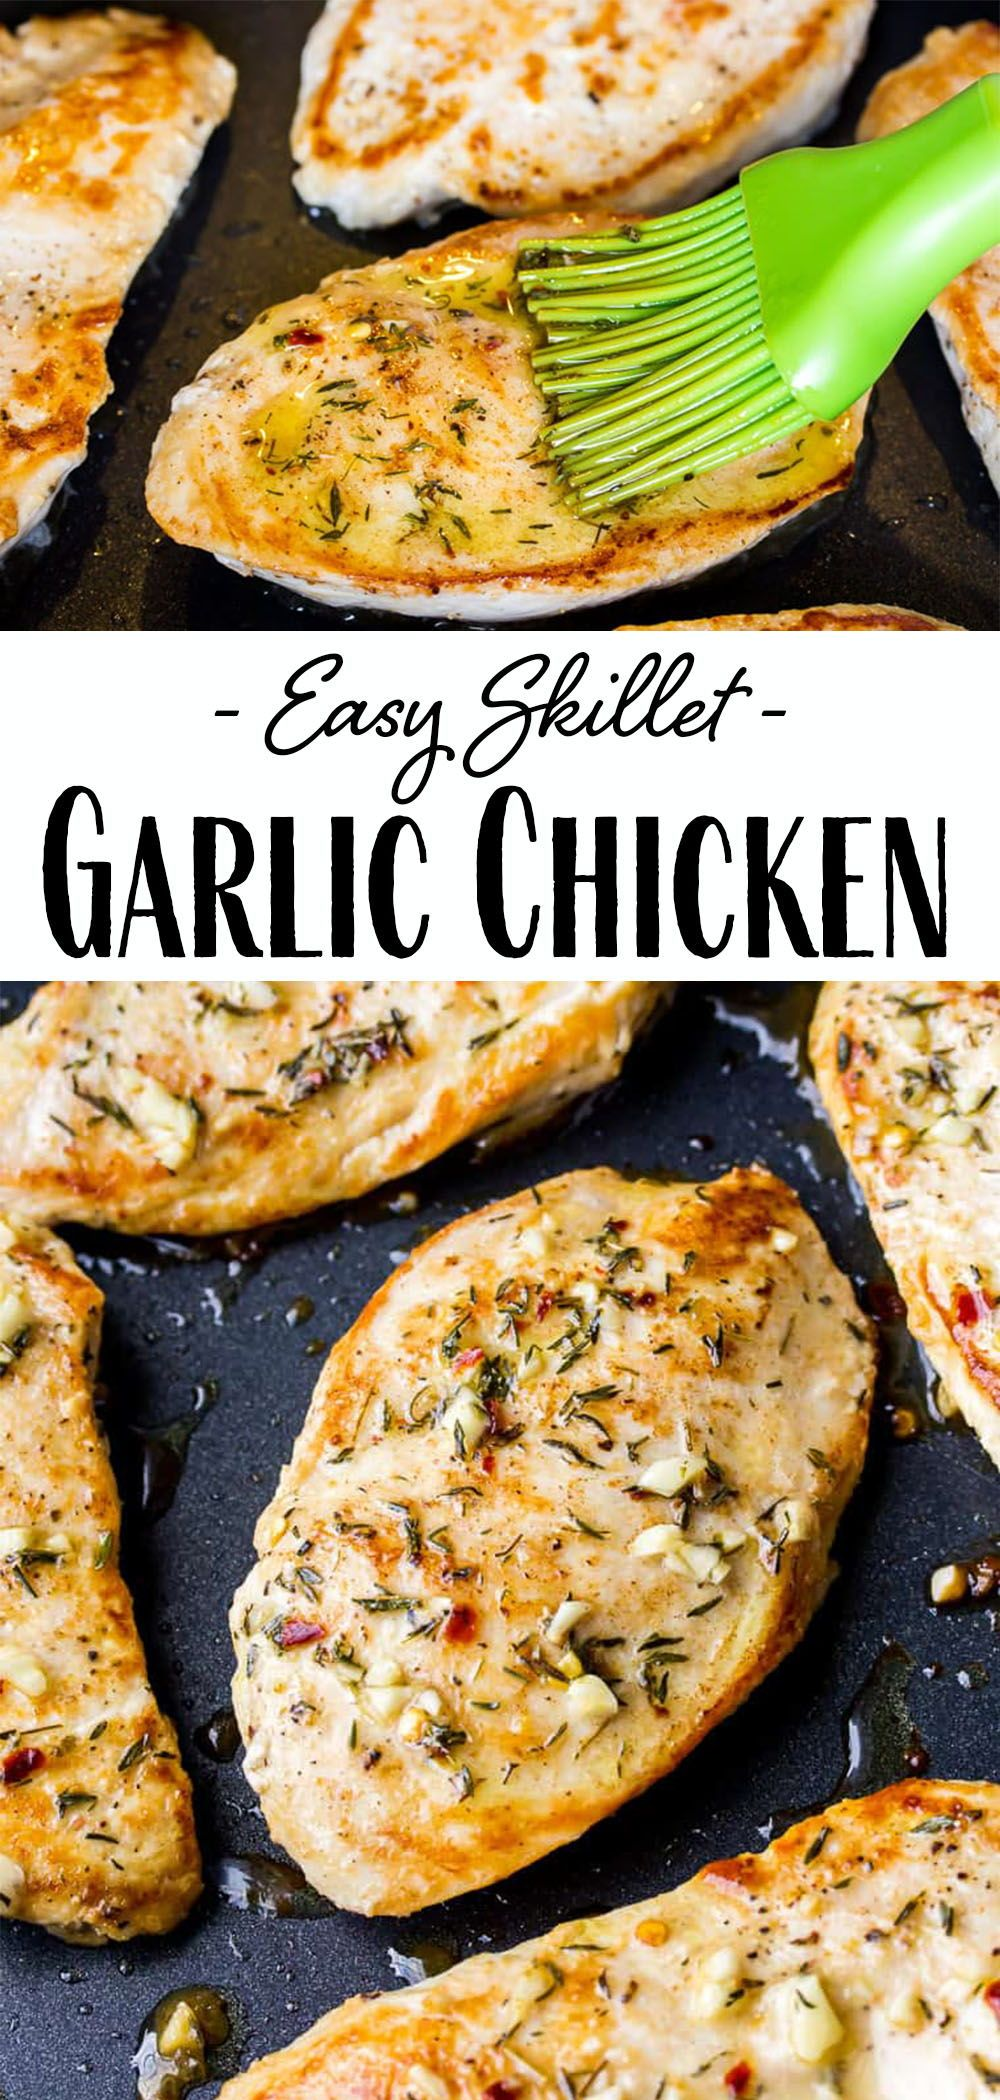 Easy Recipes, Travel & Lifestyle Blog - Delicious Little Bites -   25 dinner recipes for family main dishes chicken breasts ideas